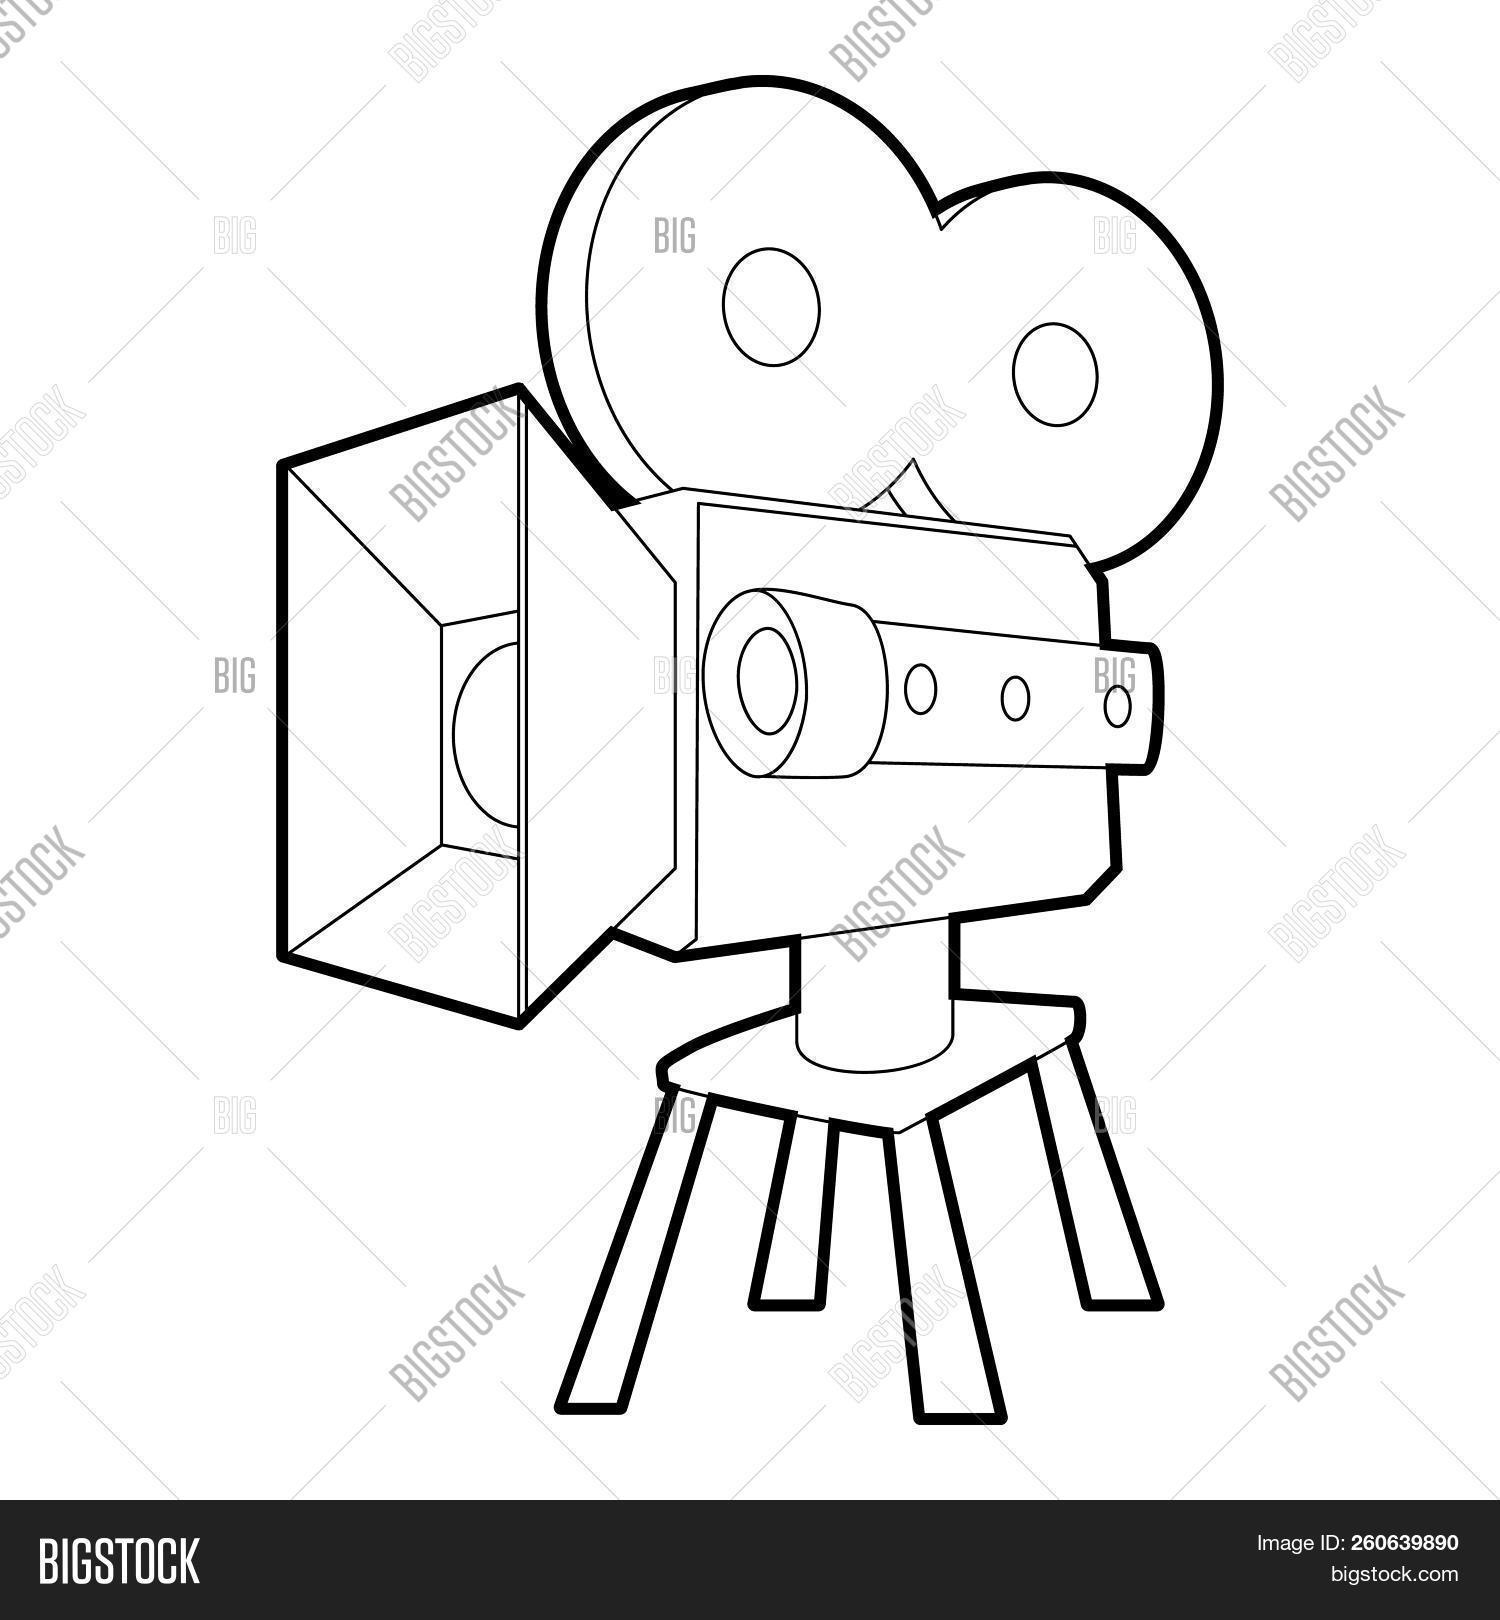 1500x1620 camera icon outline illustration of camera icon for web image